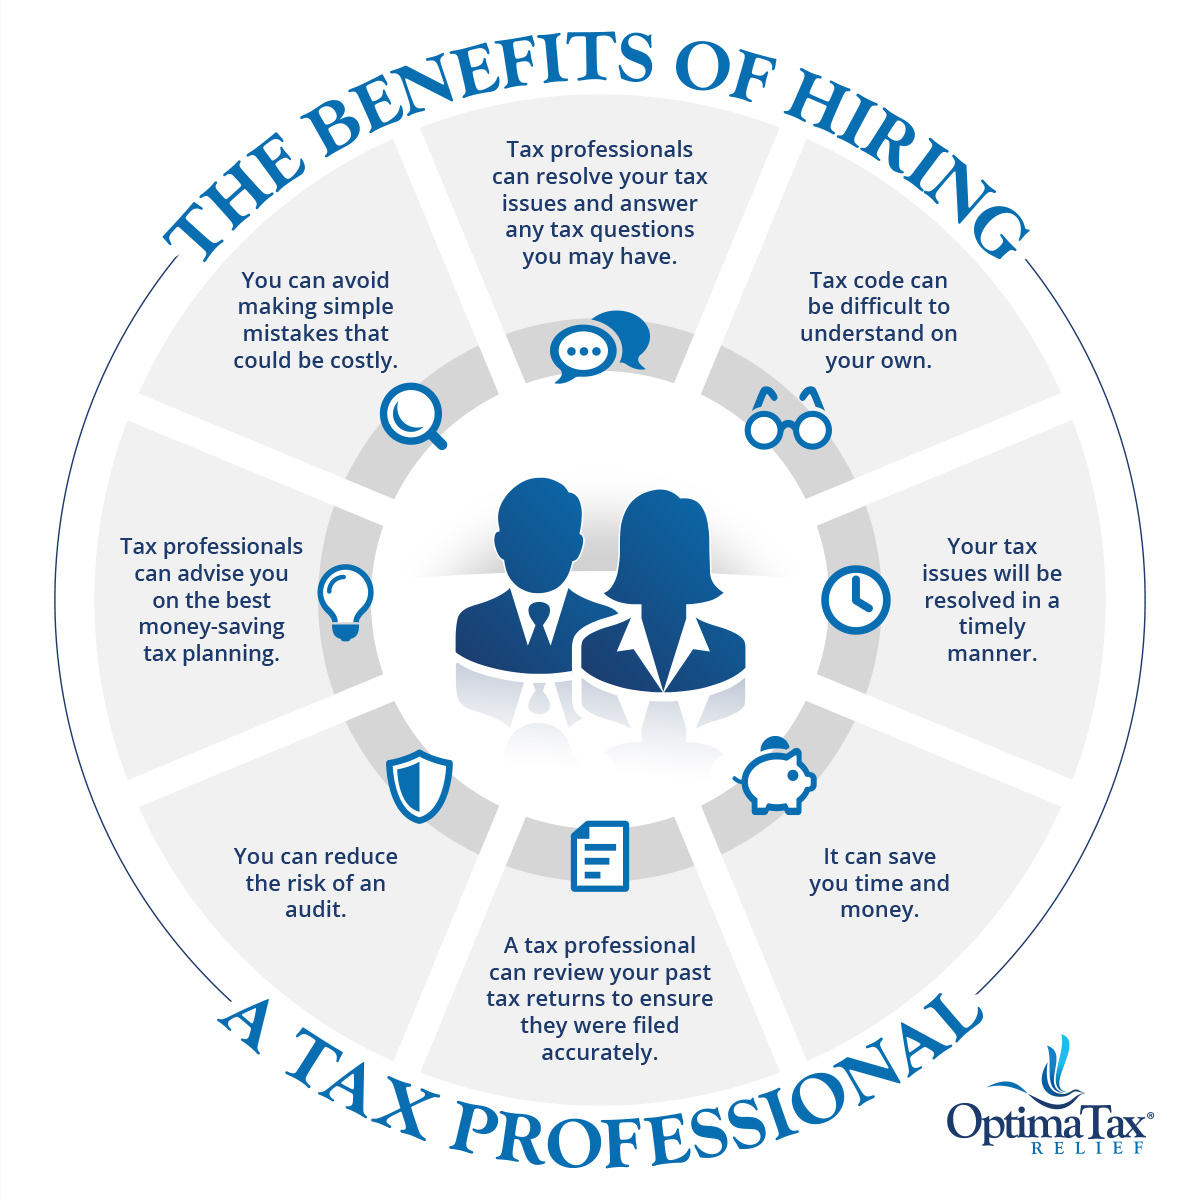 The Benefits of Hiring a Tax Professional